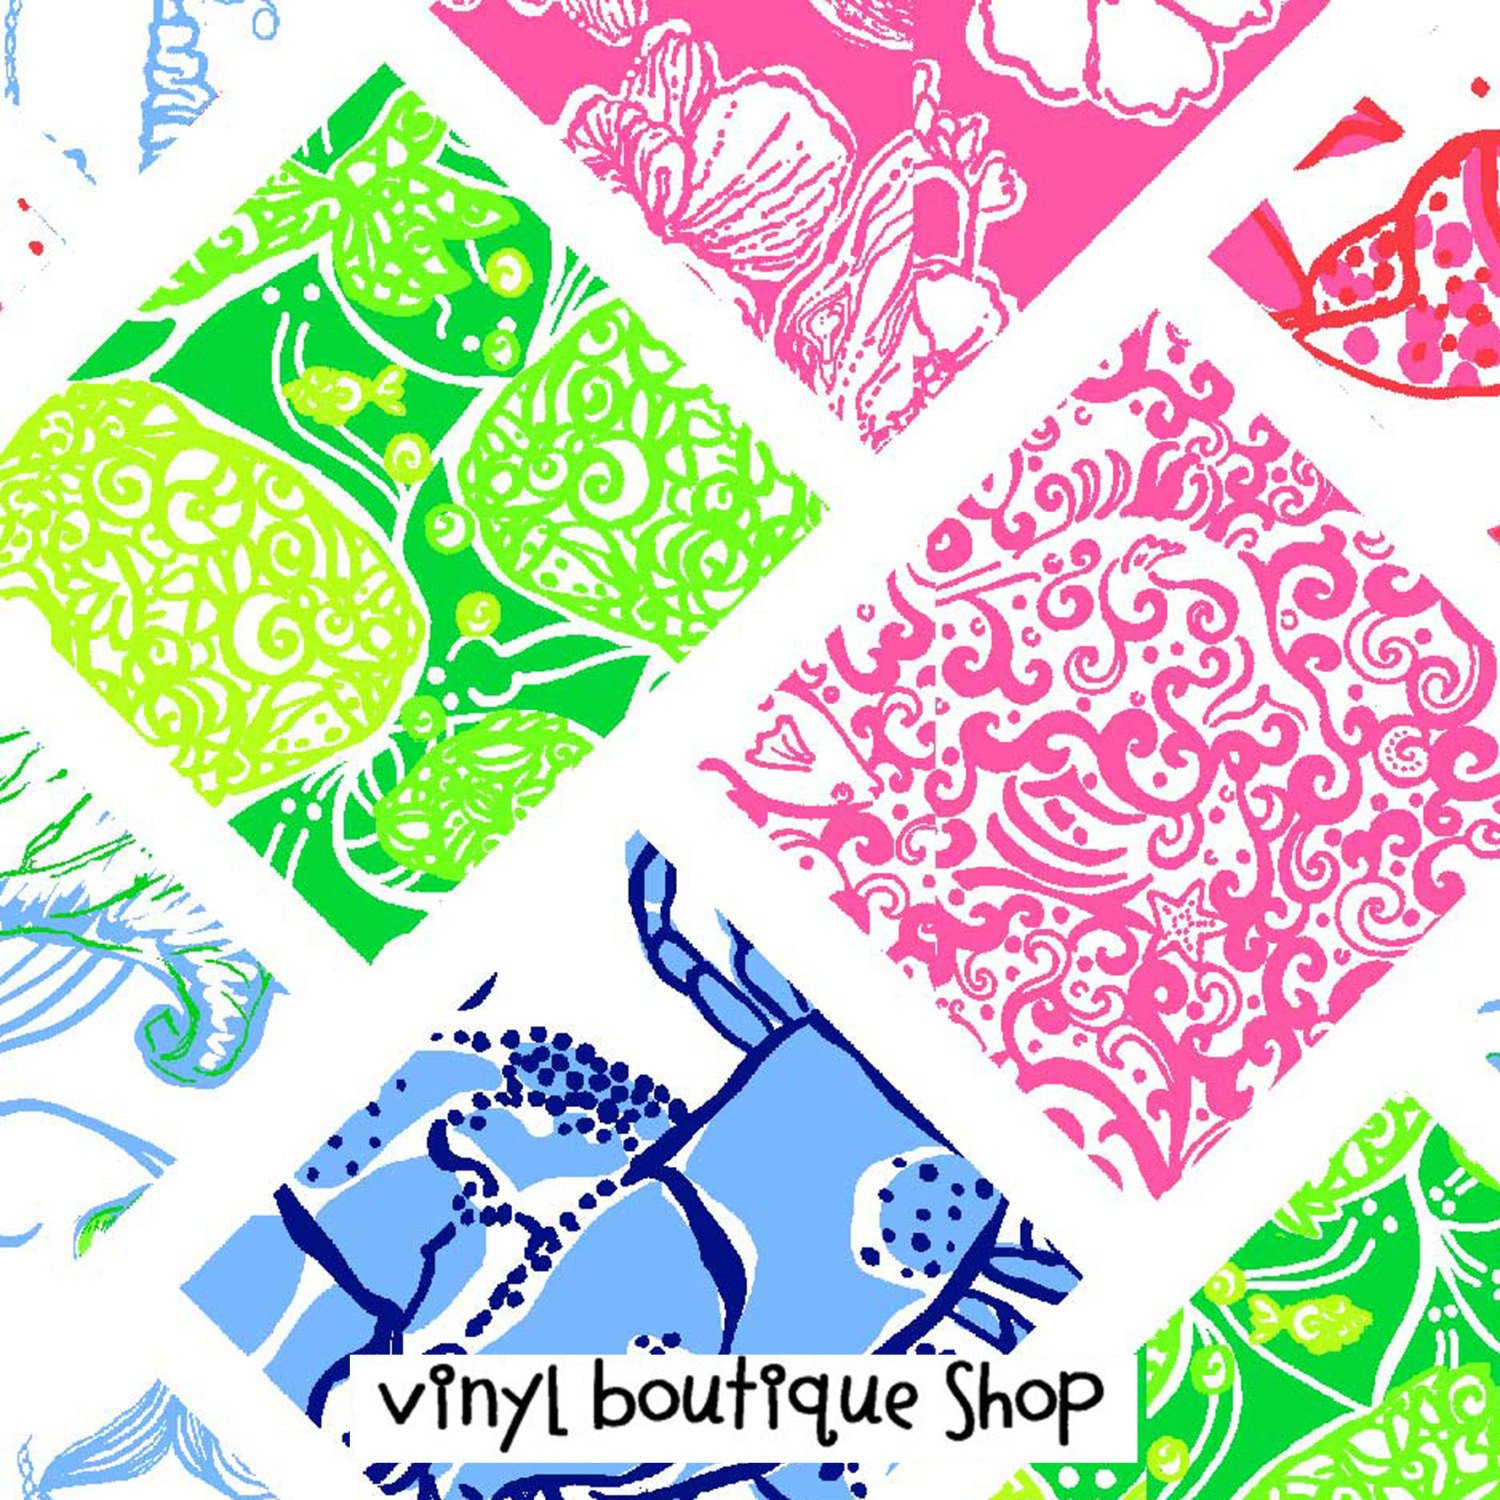 Patchwork Piece Lilly Inspired Printed Patterned Craft Vinyl